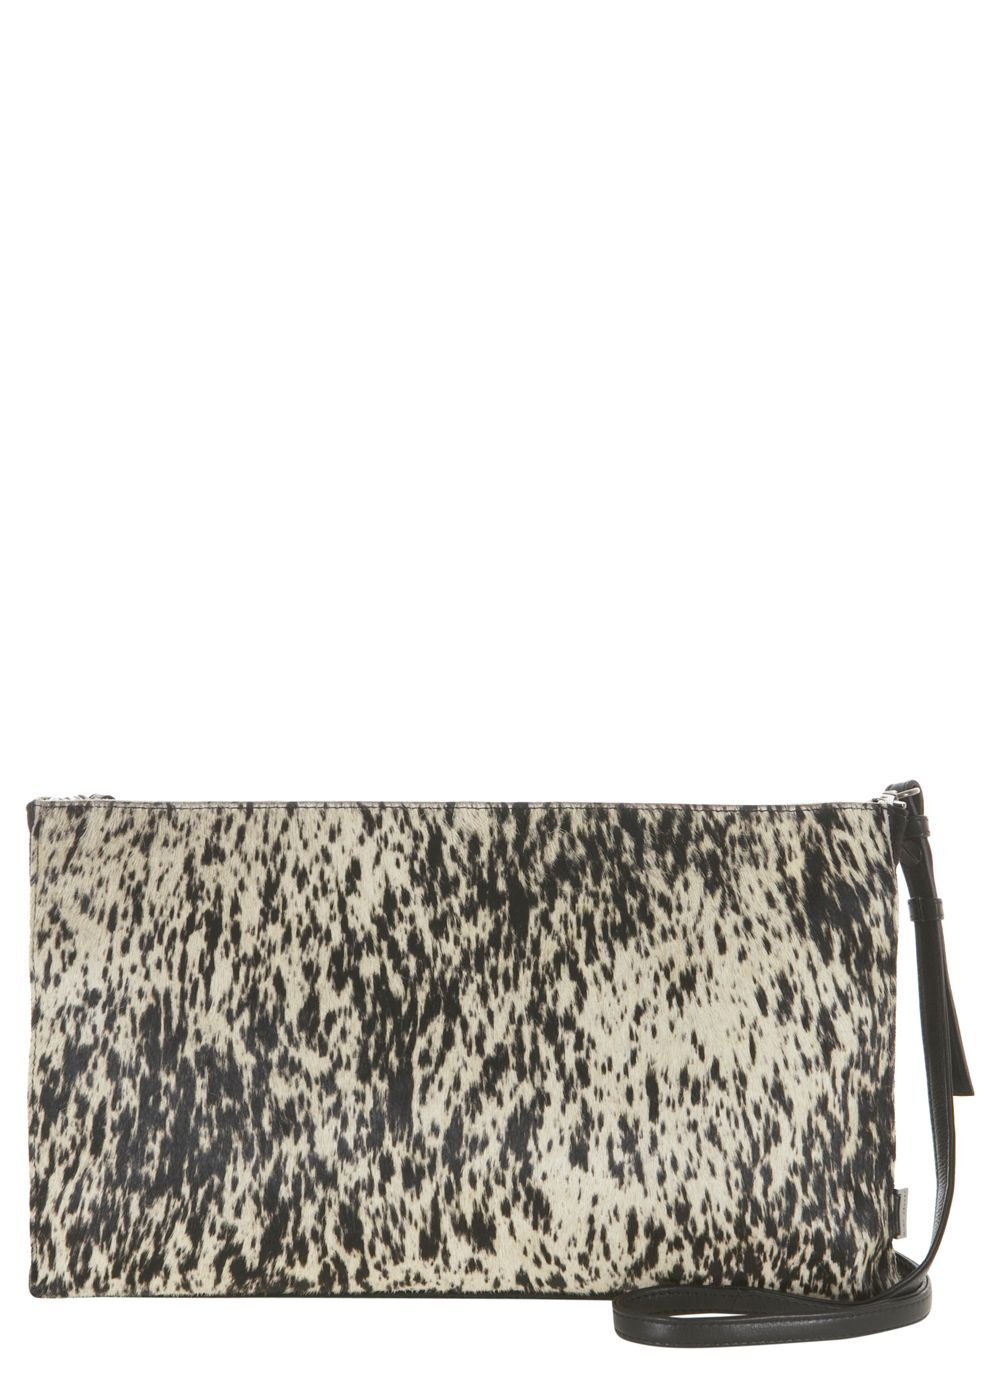 Black ponyskin clutch